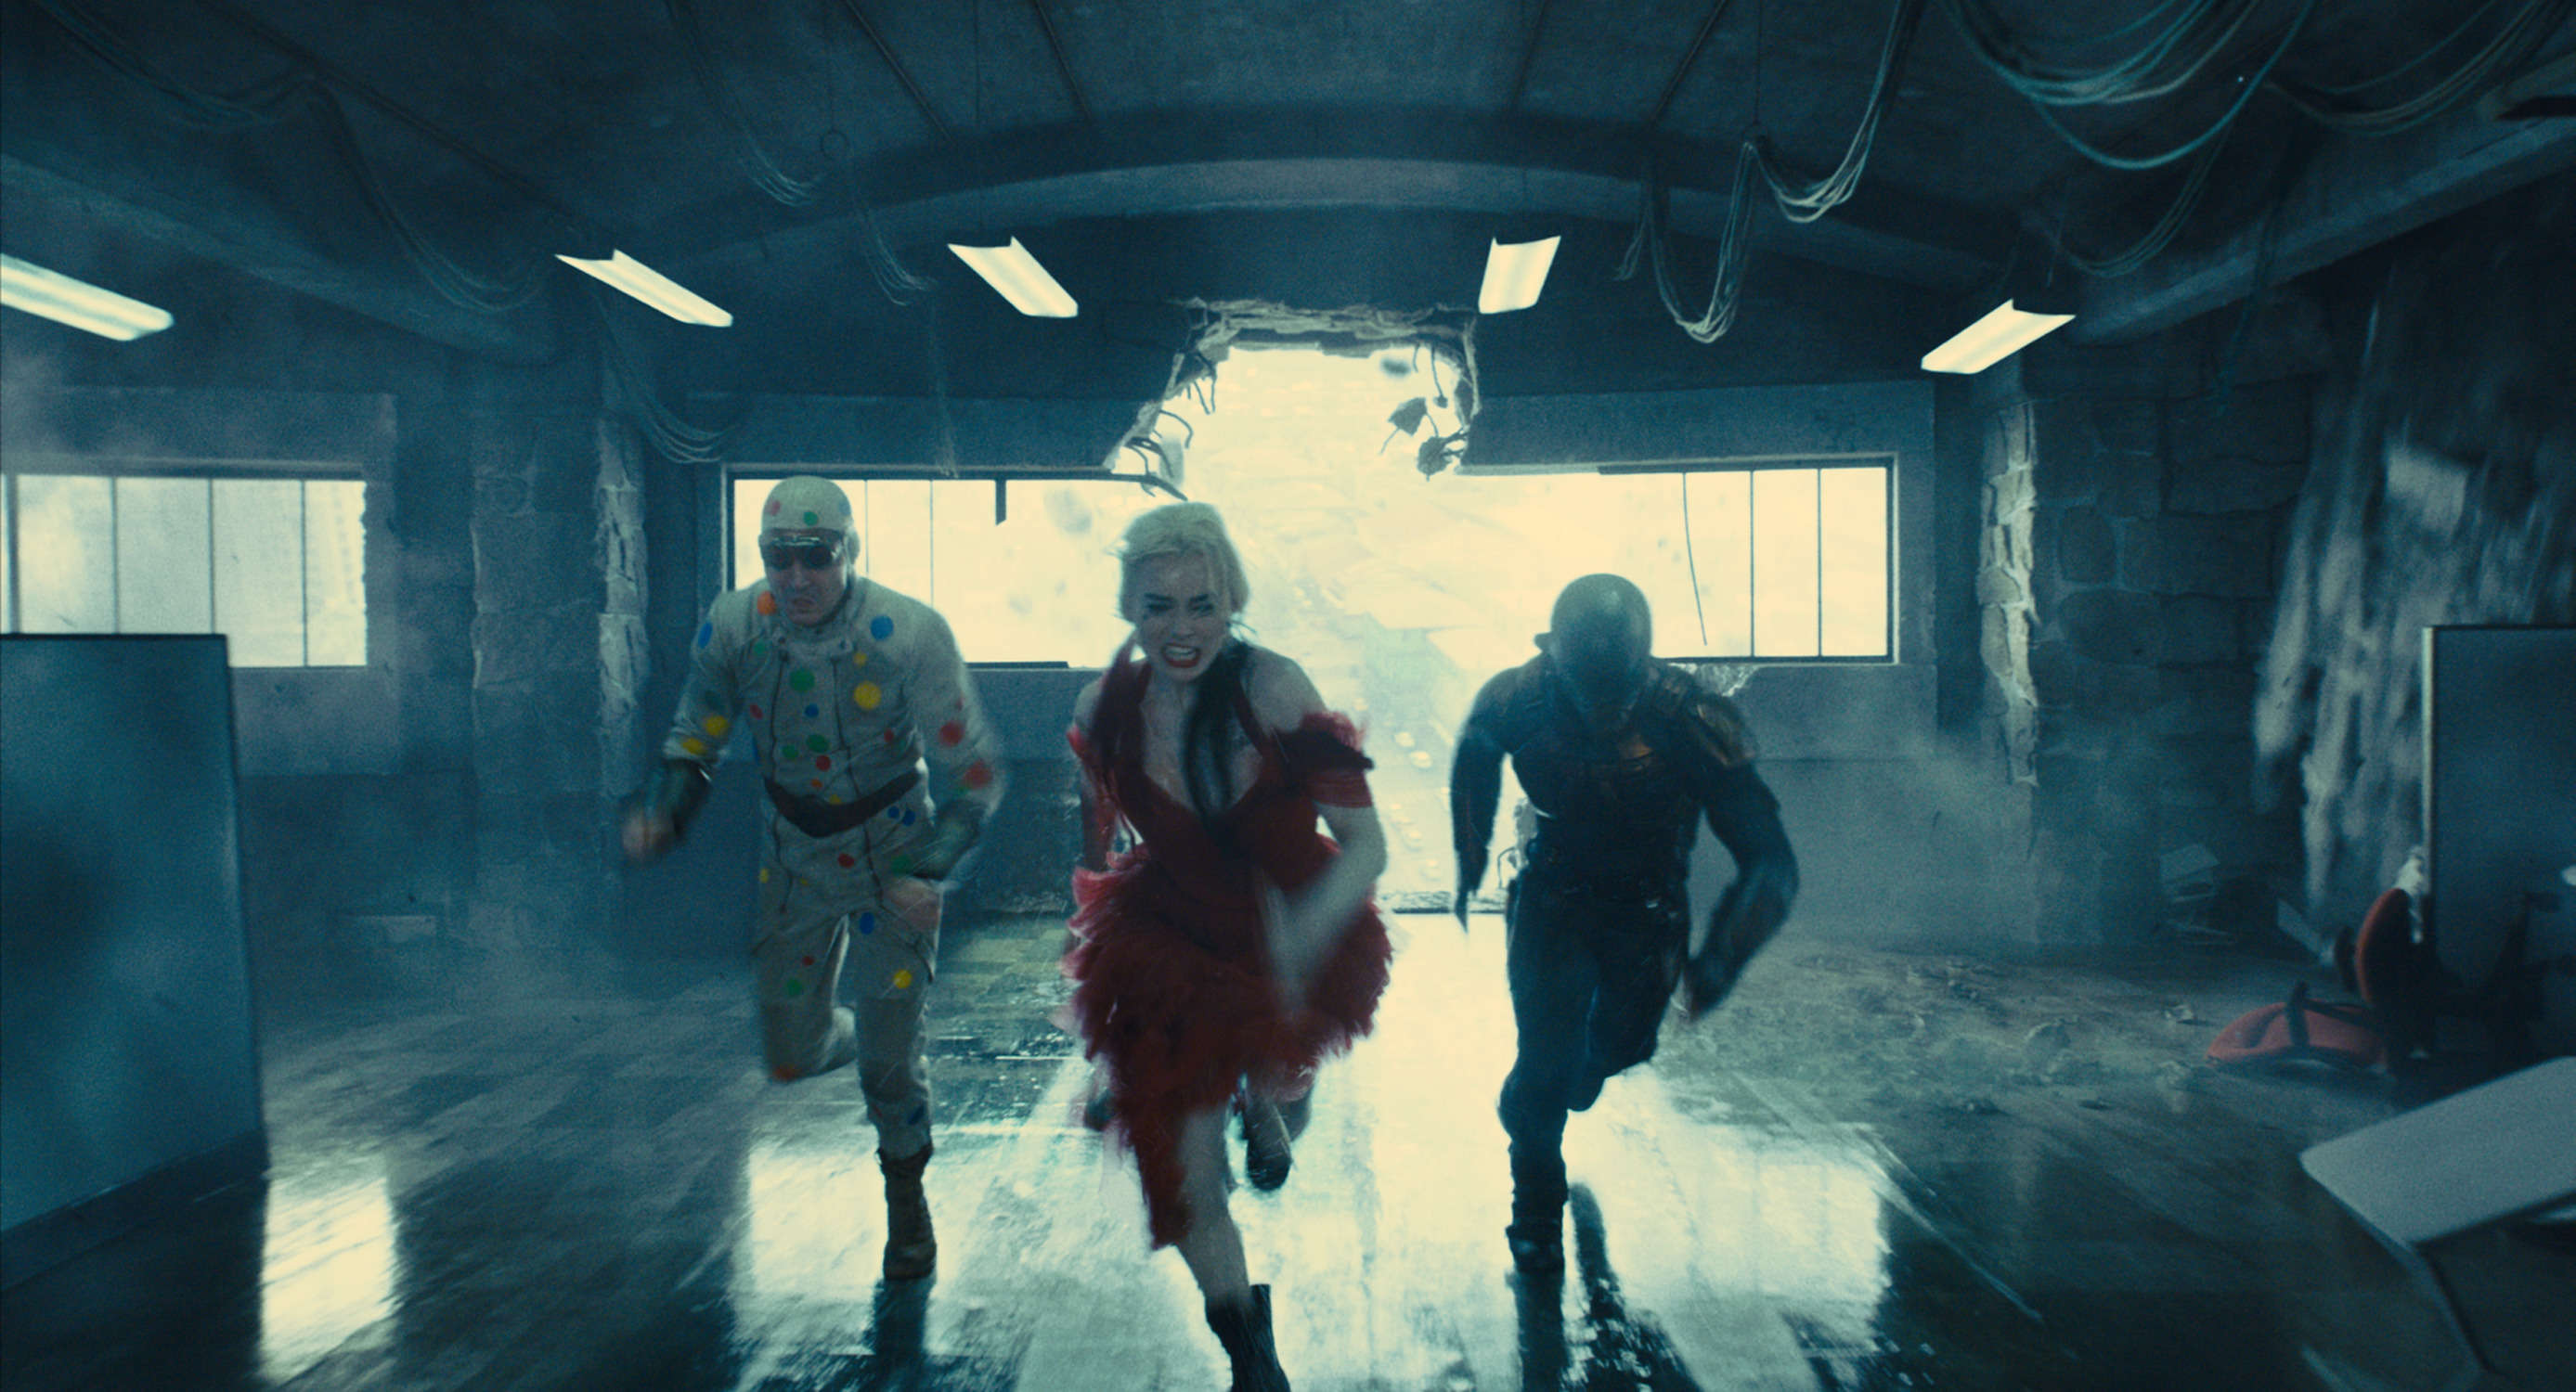 Harley Quinn's new Suicide Squad look was inspired by a Bat-tastic video game, says James Gunn